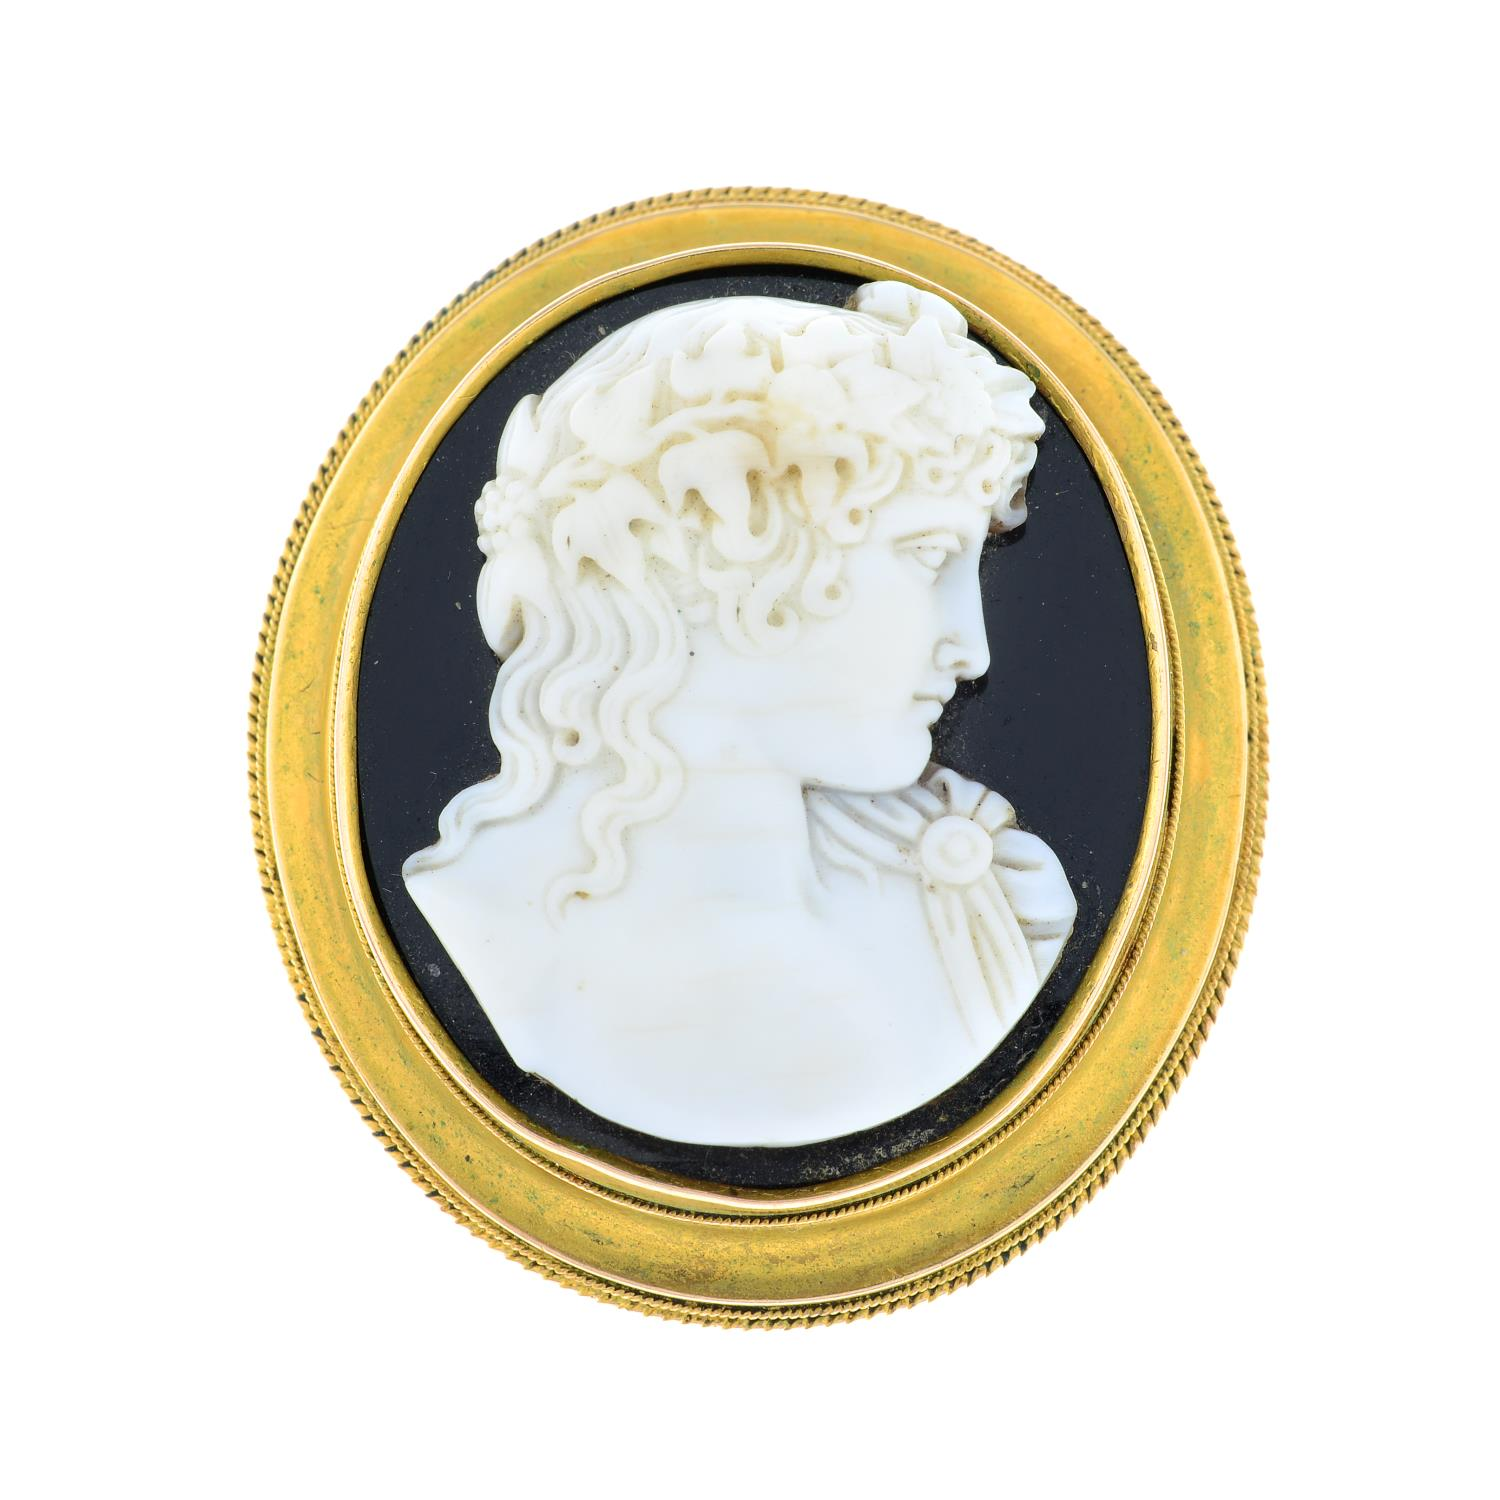 A late Victorian gold onyx and shell cameo brooch, depicting Bacchus. - Image 2 of 5